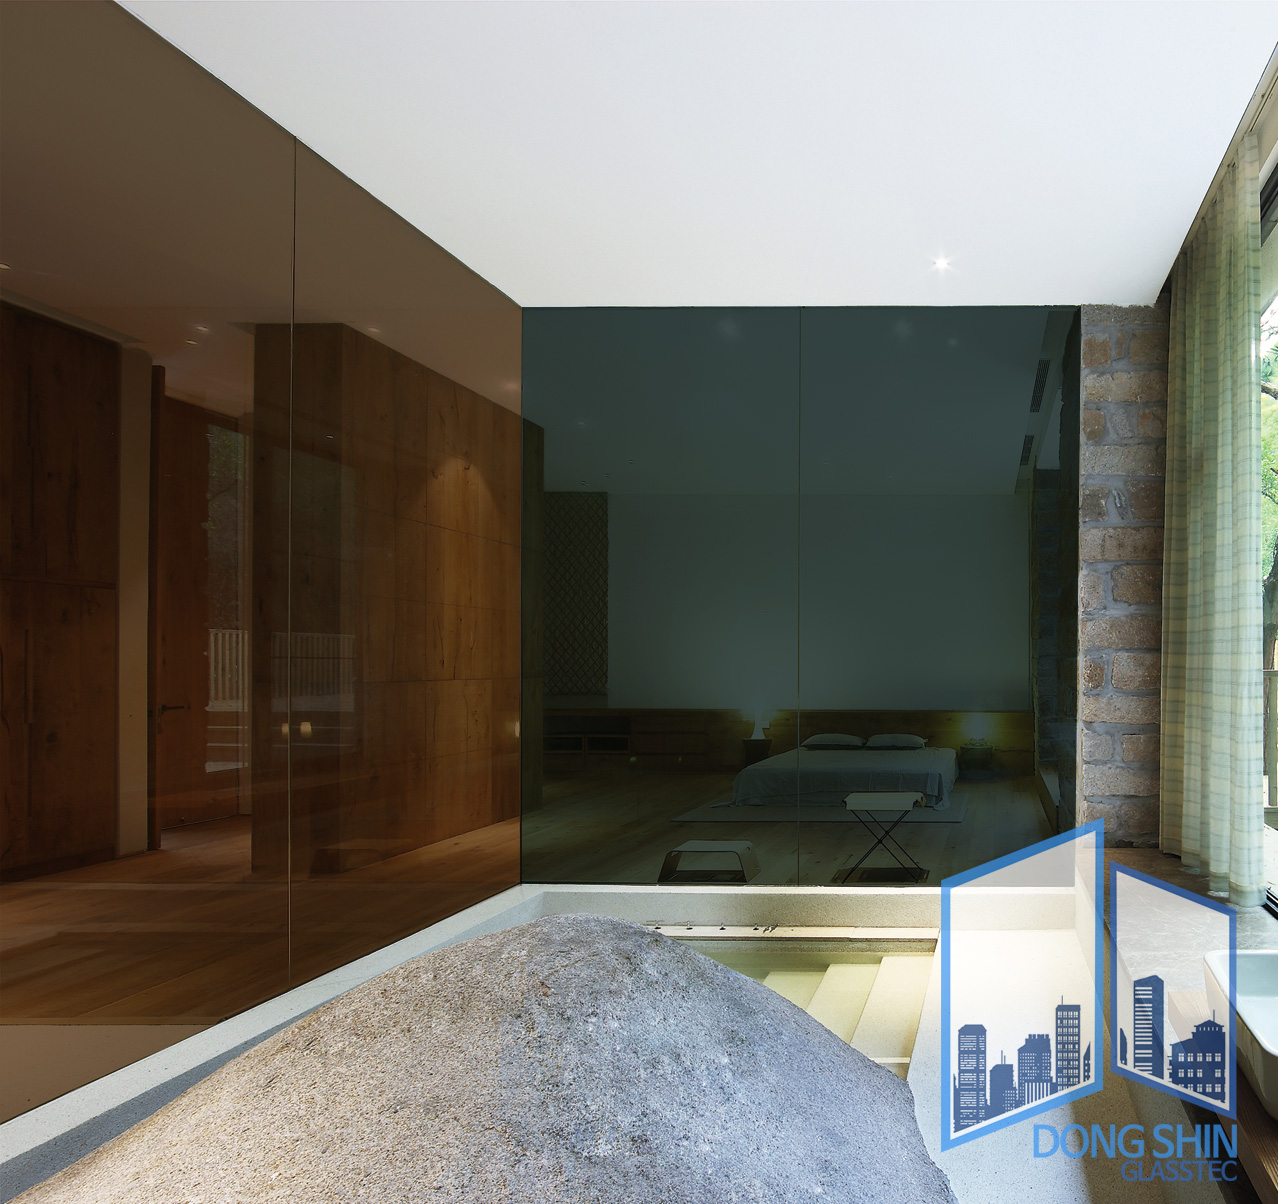 fmx_interior_design_co_xiamen_china_kitchen_bath_open_plan_glass_box8t다크그레이_.jpg